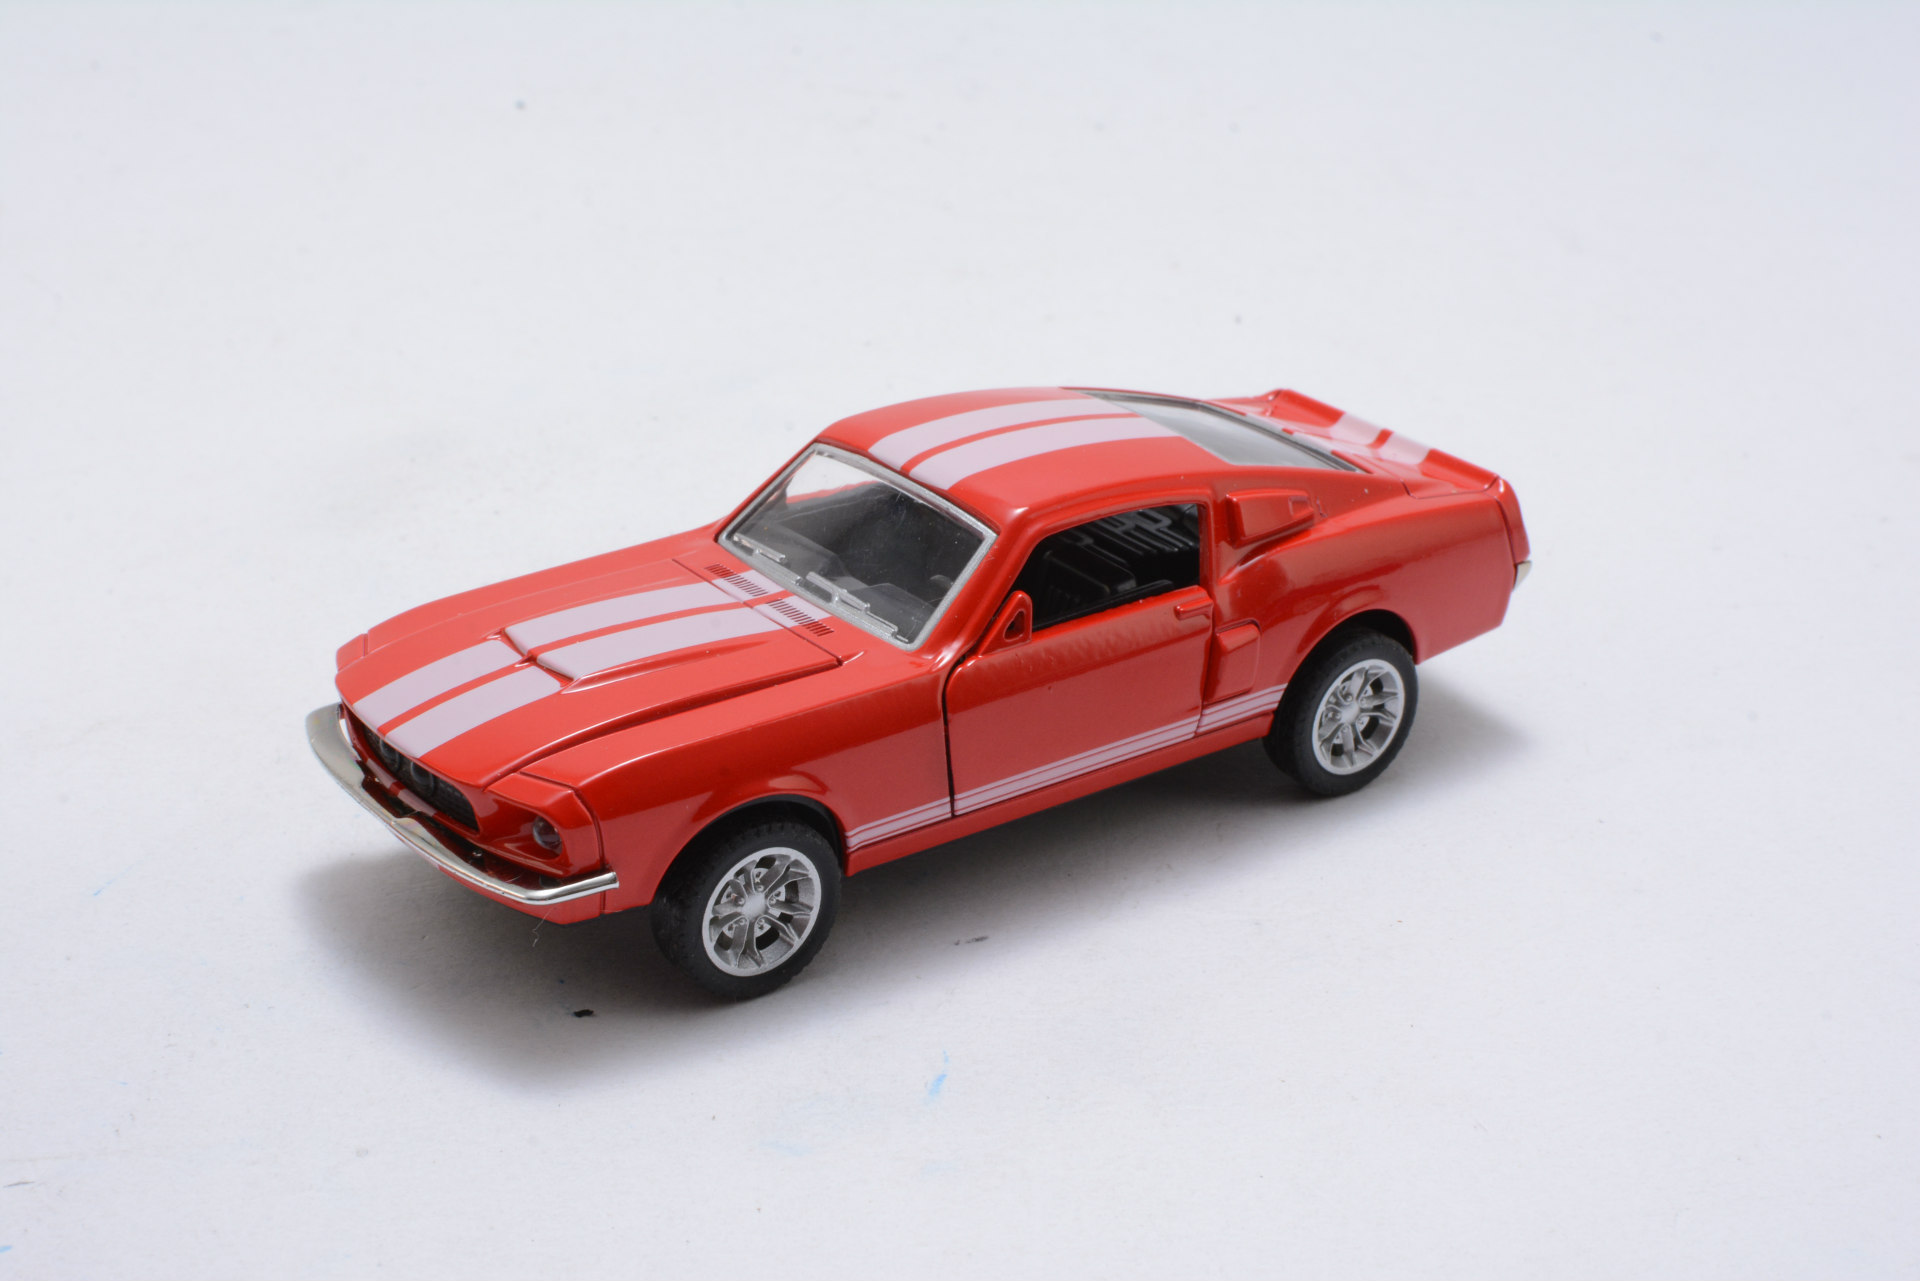 Ford Mustang GT 1967 GT500 Toy Car 13x5x35cm 17